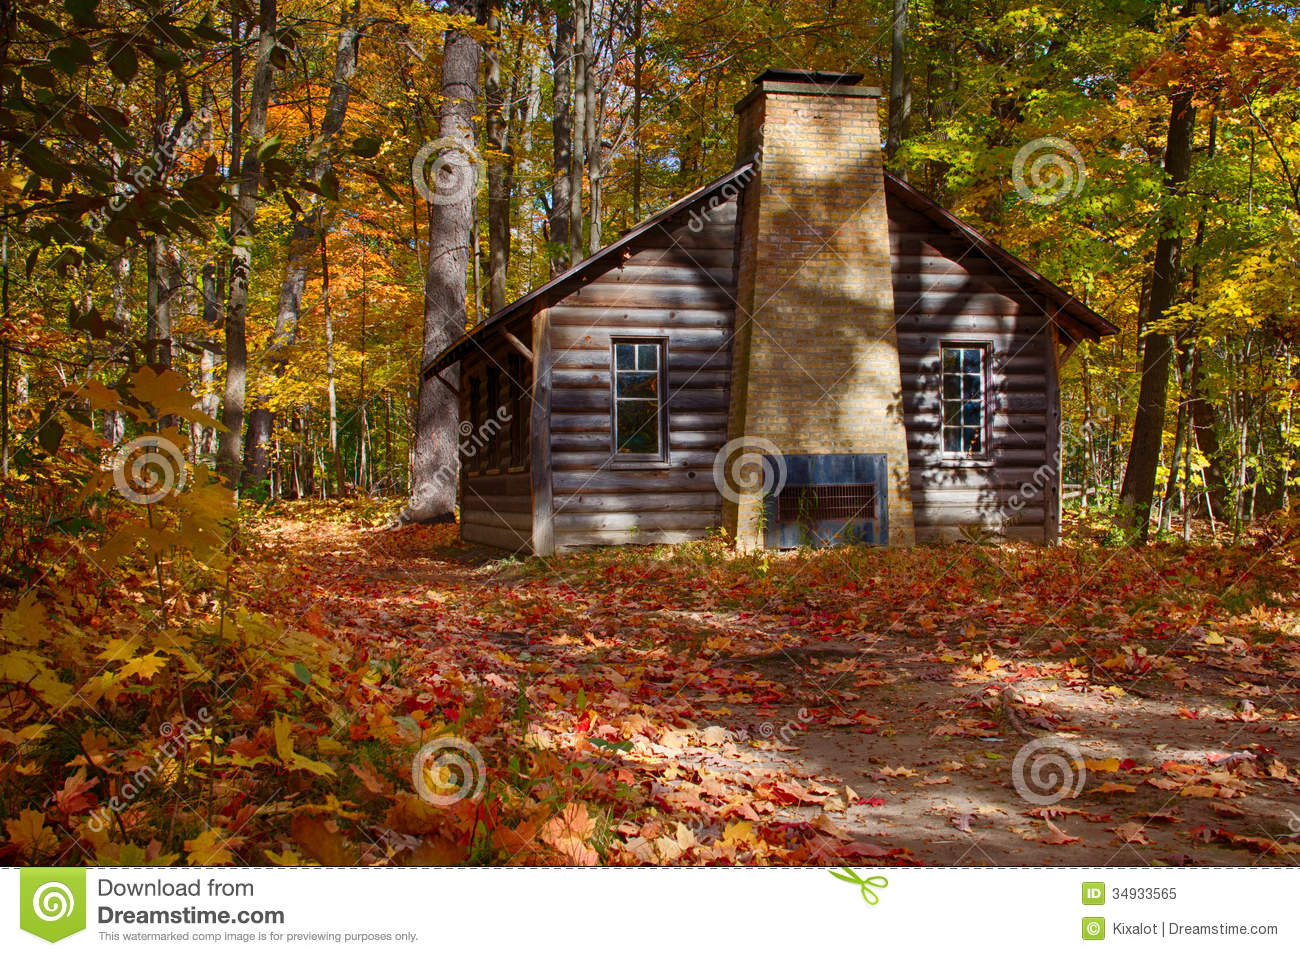 Free Fall Waterfall Desktop Wallpaper Log Cabin In Fall Woods Royalty Free Stock Photo Image